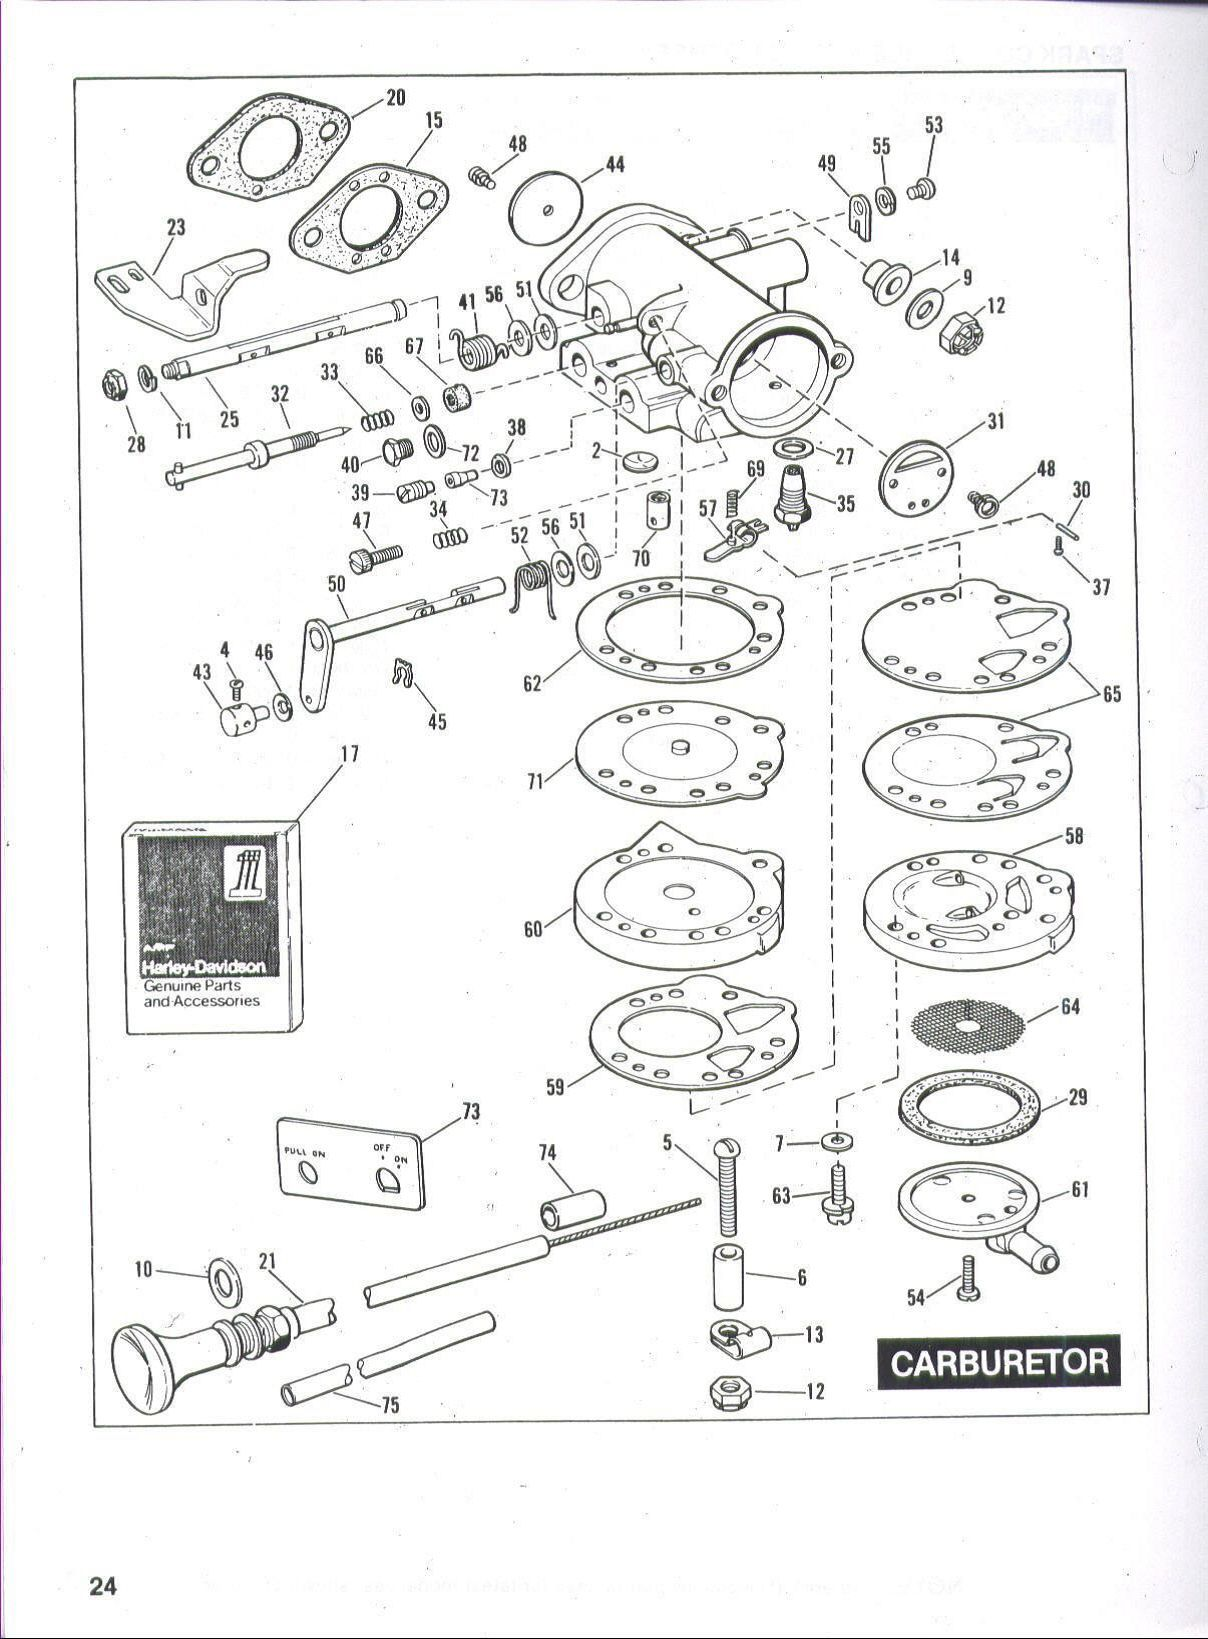 medium resolution of harley davidson golf cart carburetor diagram utv stuff golf ez go gas engine carborator diagram